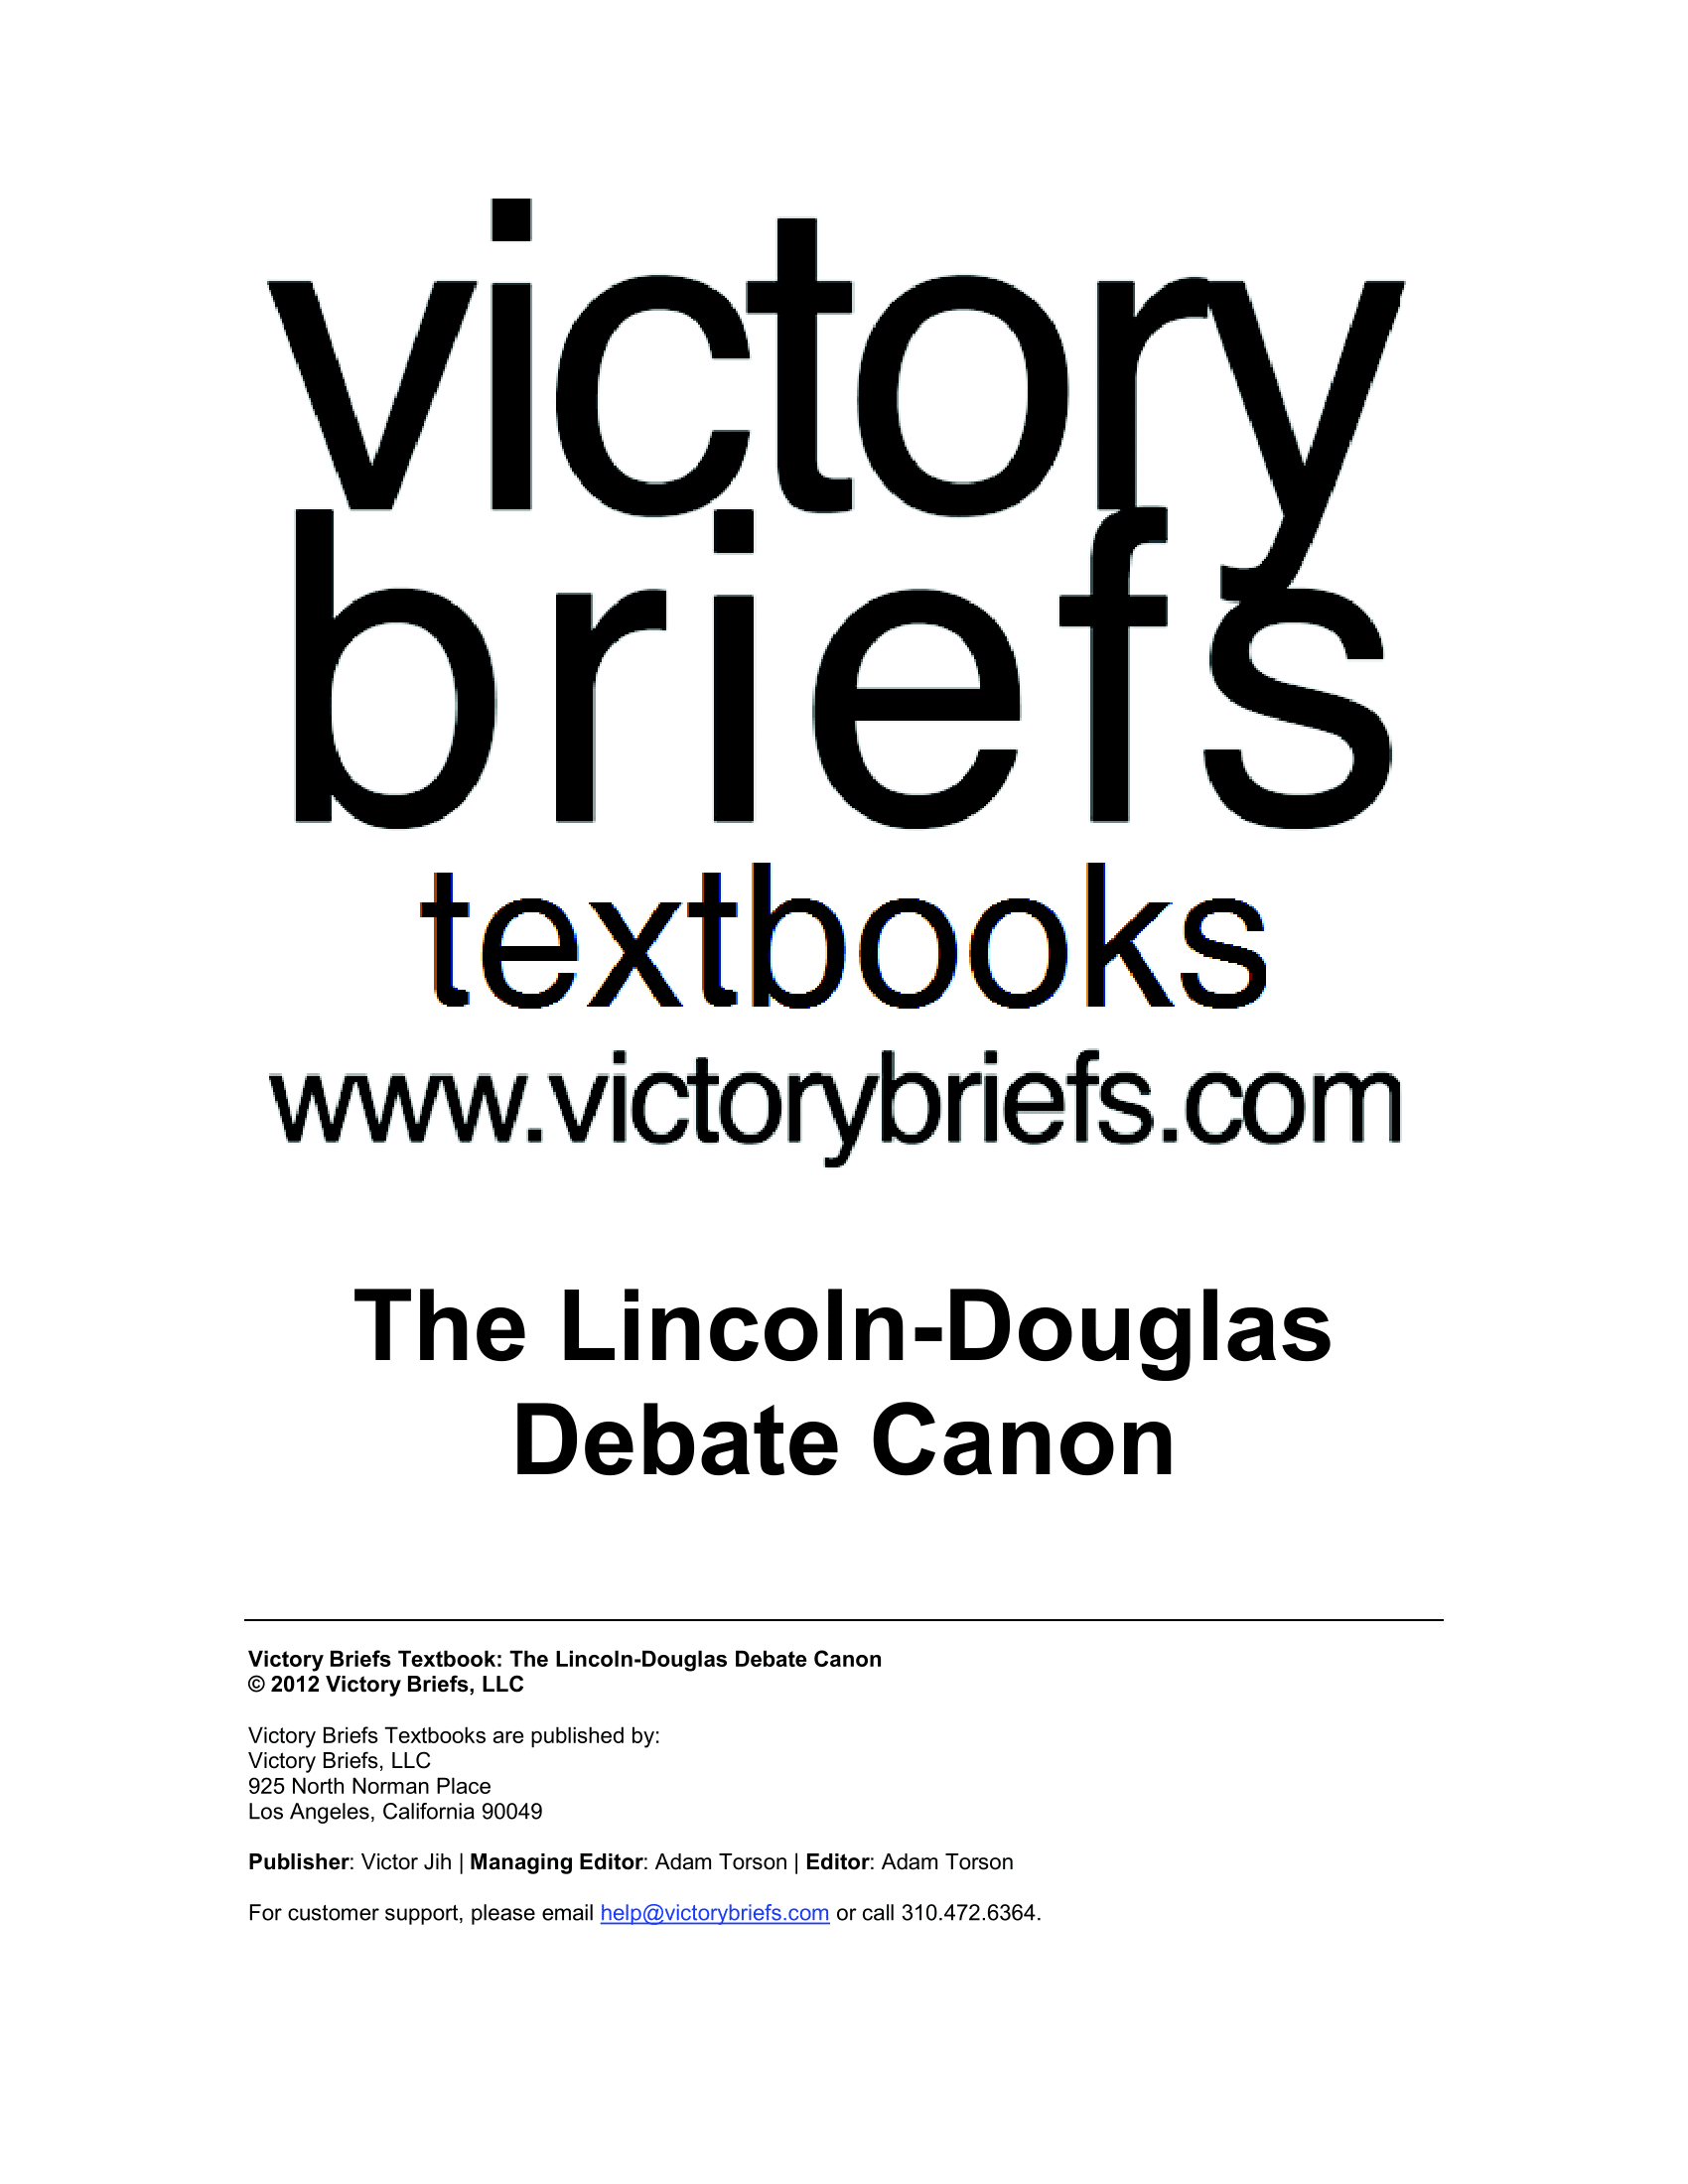 The Lincoln-Douglas Debate Canon